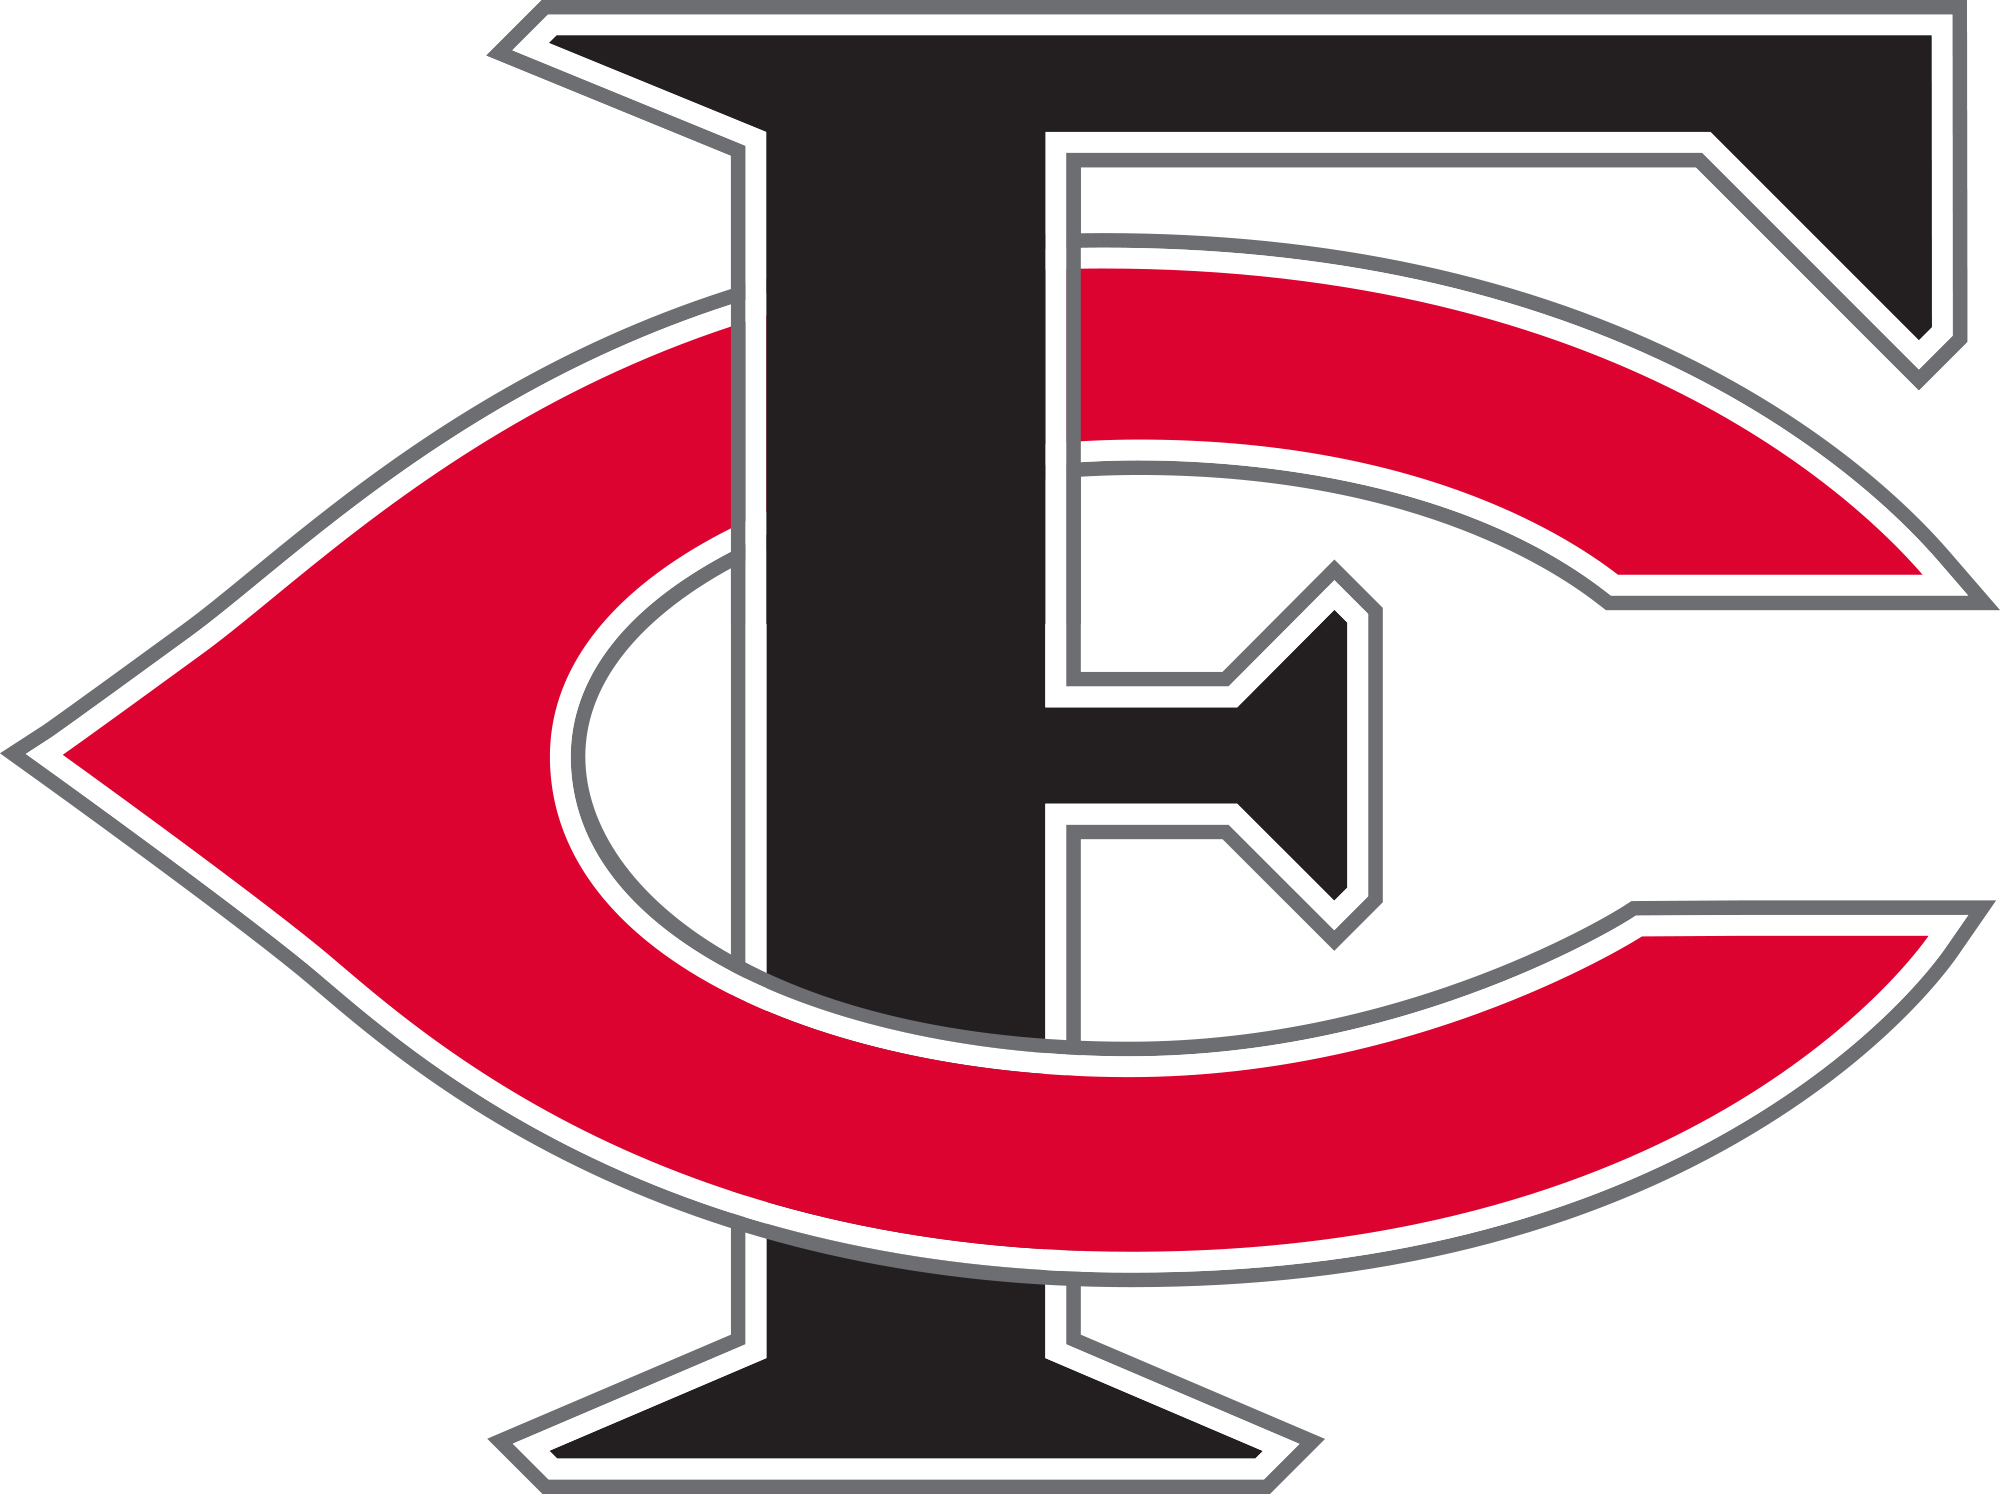 Celebrating his 25th year as a Head Football Coach, Forsyth Central's Frank Hepler sets the stage for the Bulldog's 2017 season.